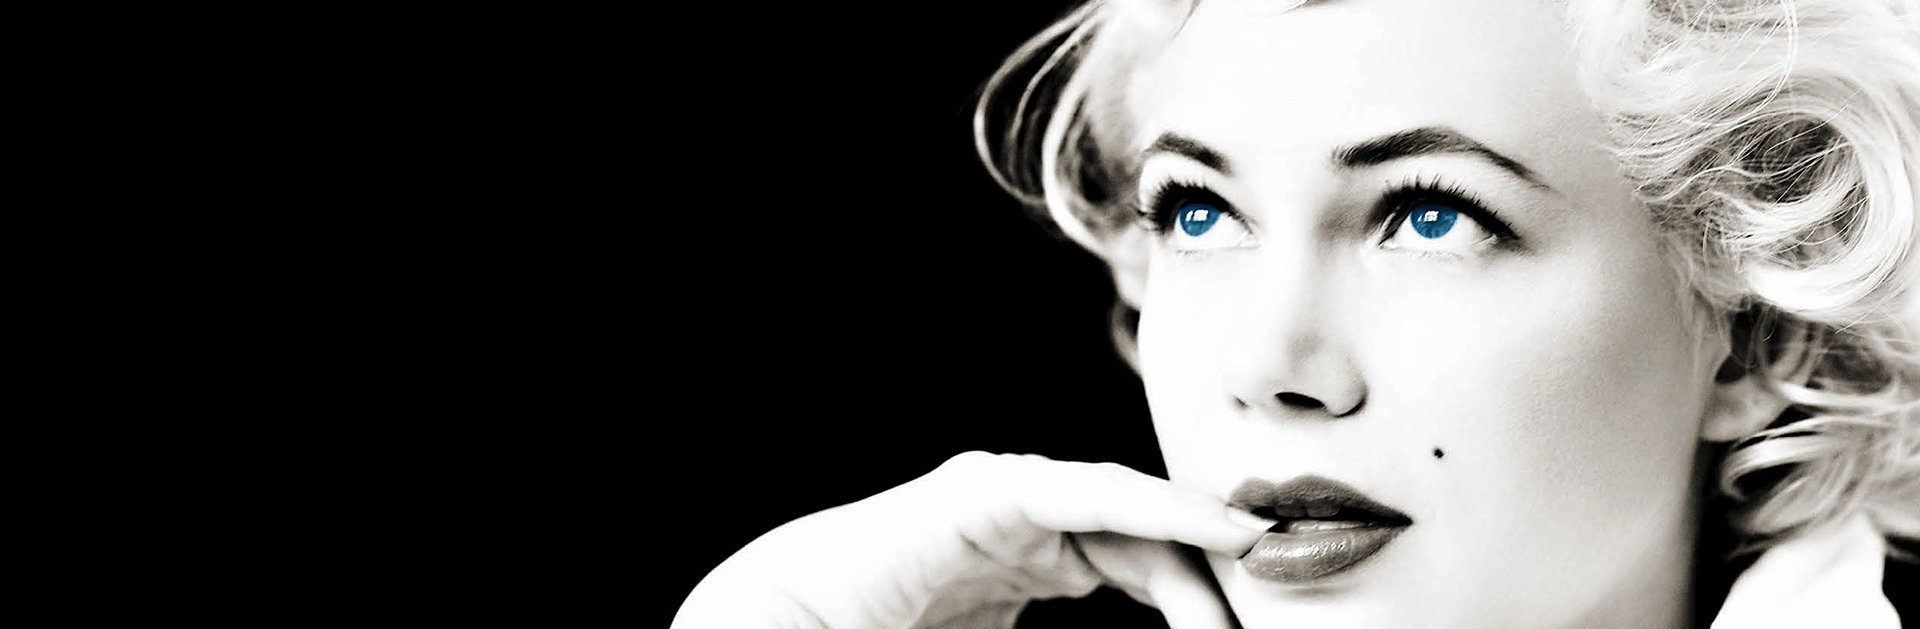 Film: My Week With Marilyn feature image